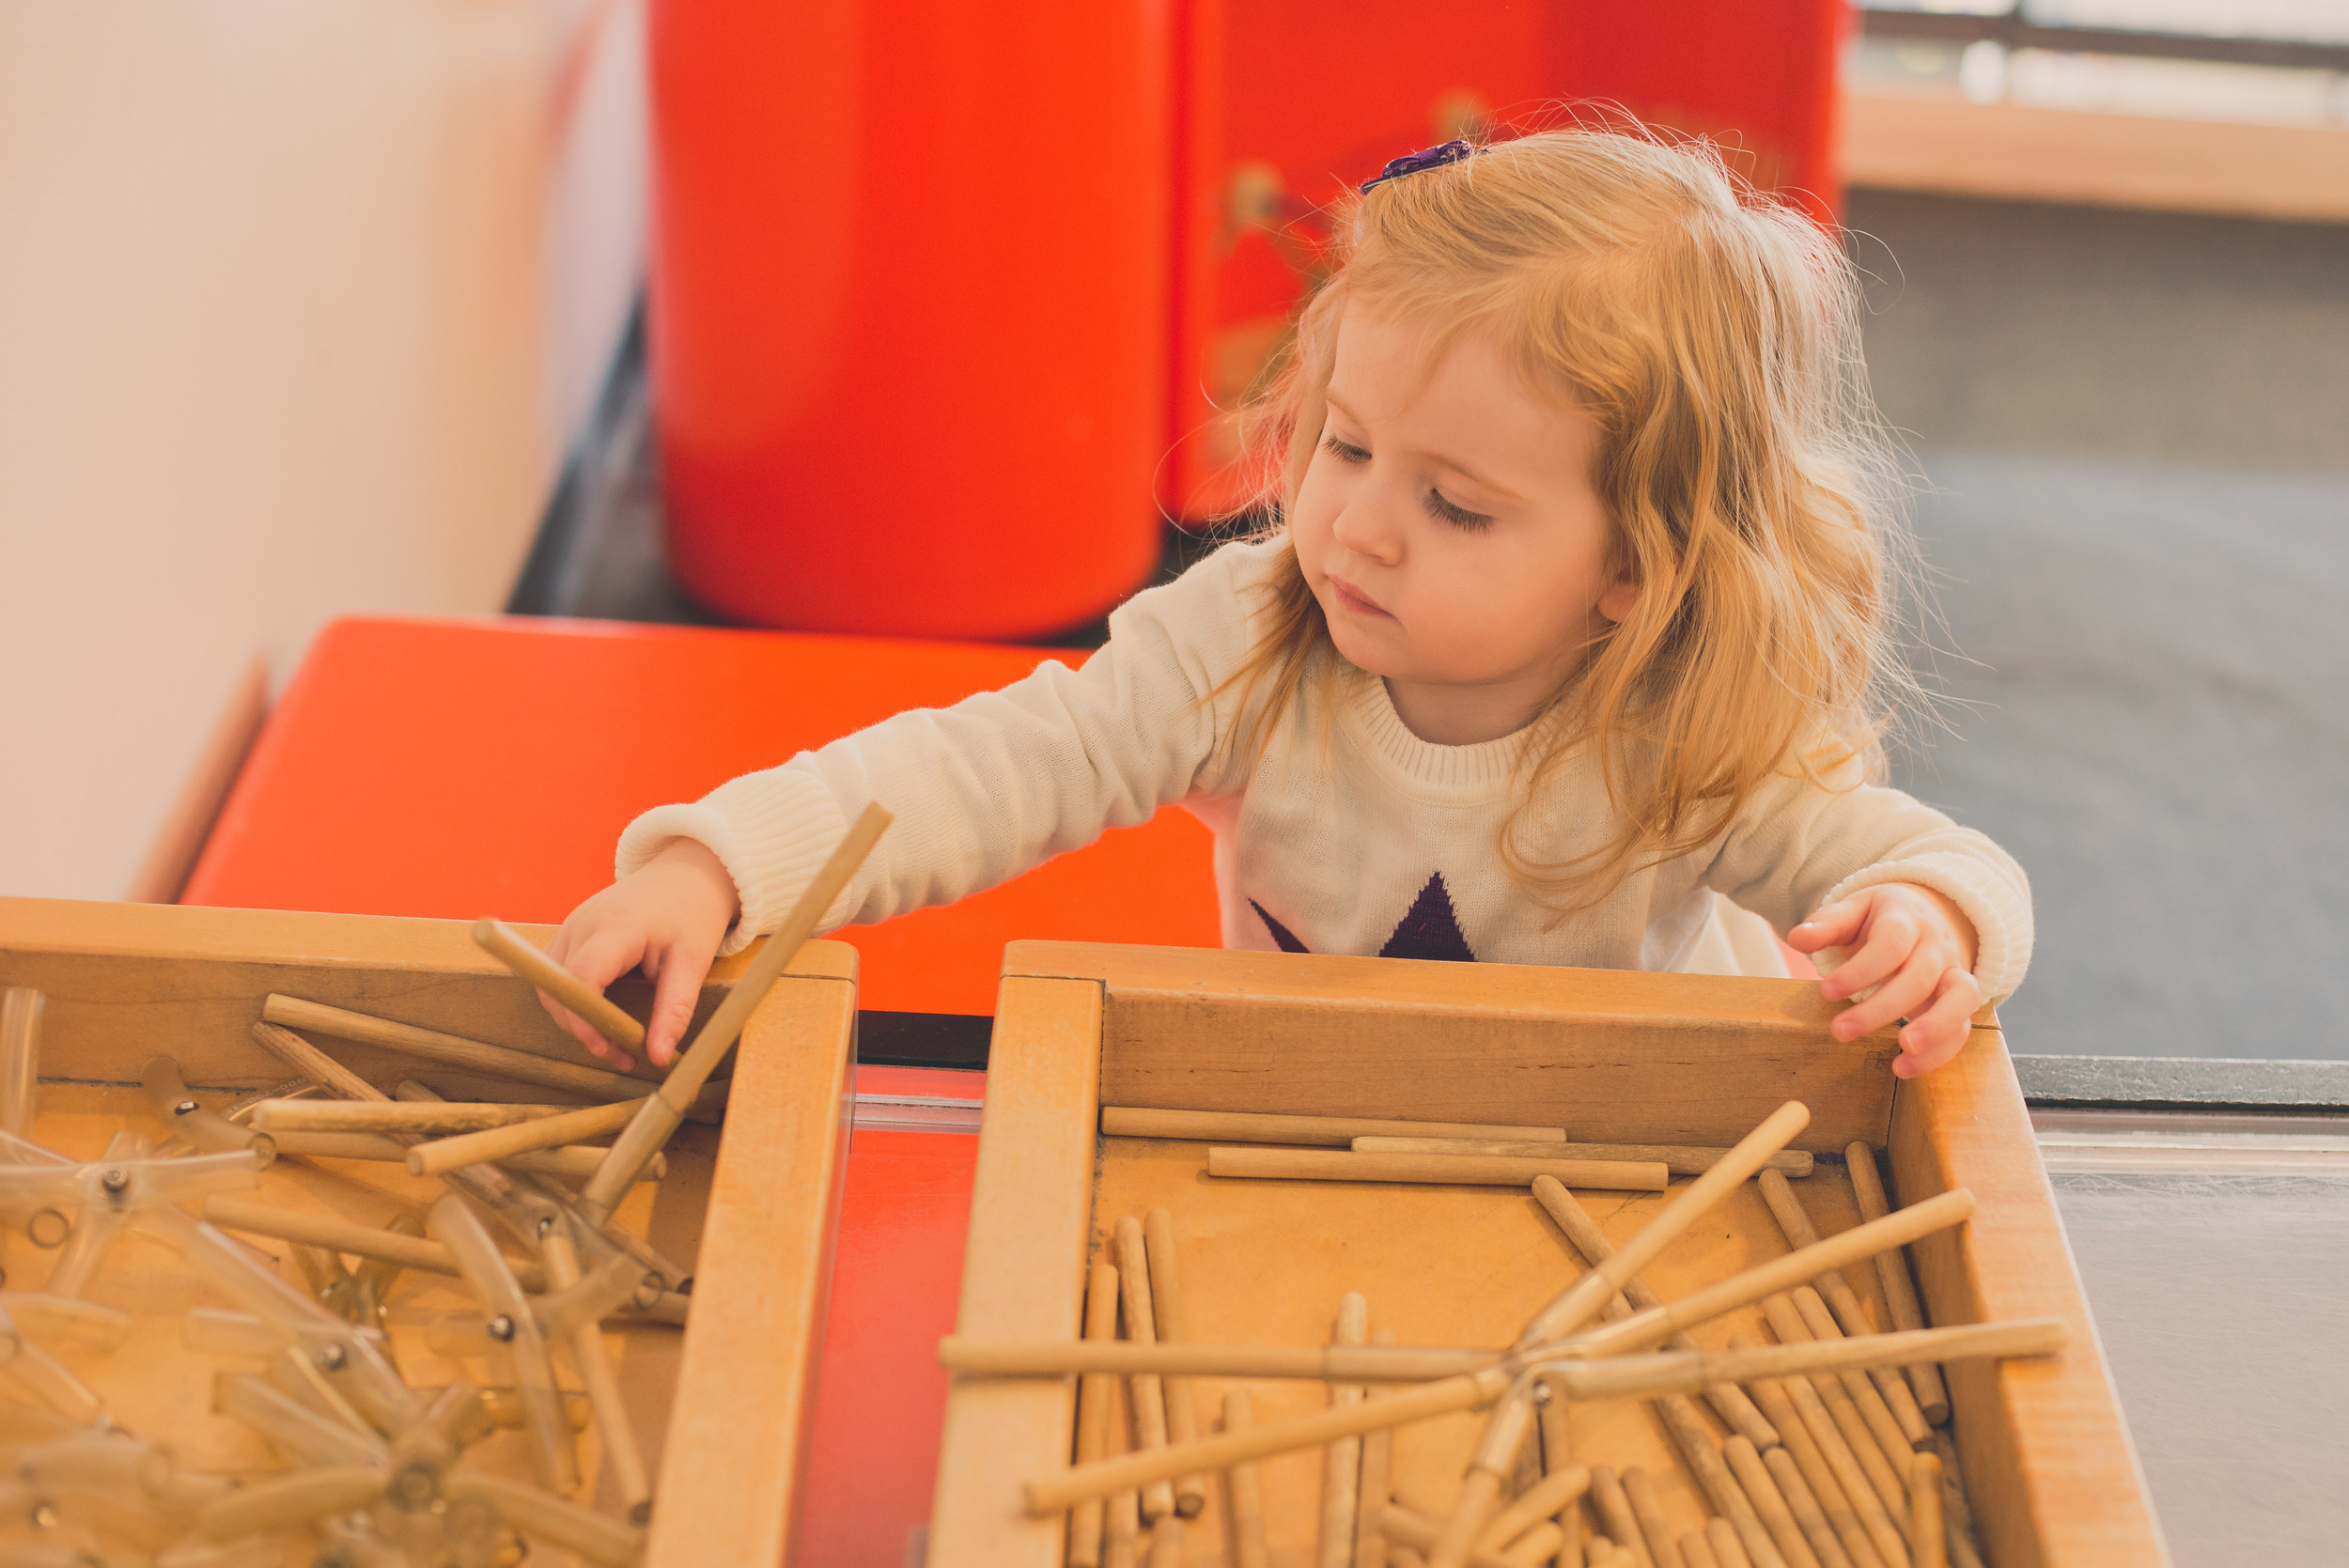 Playing with sticks at the Children's Museum.